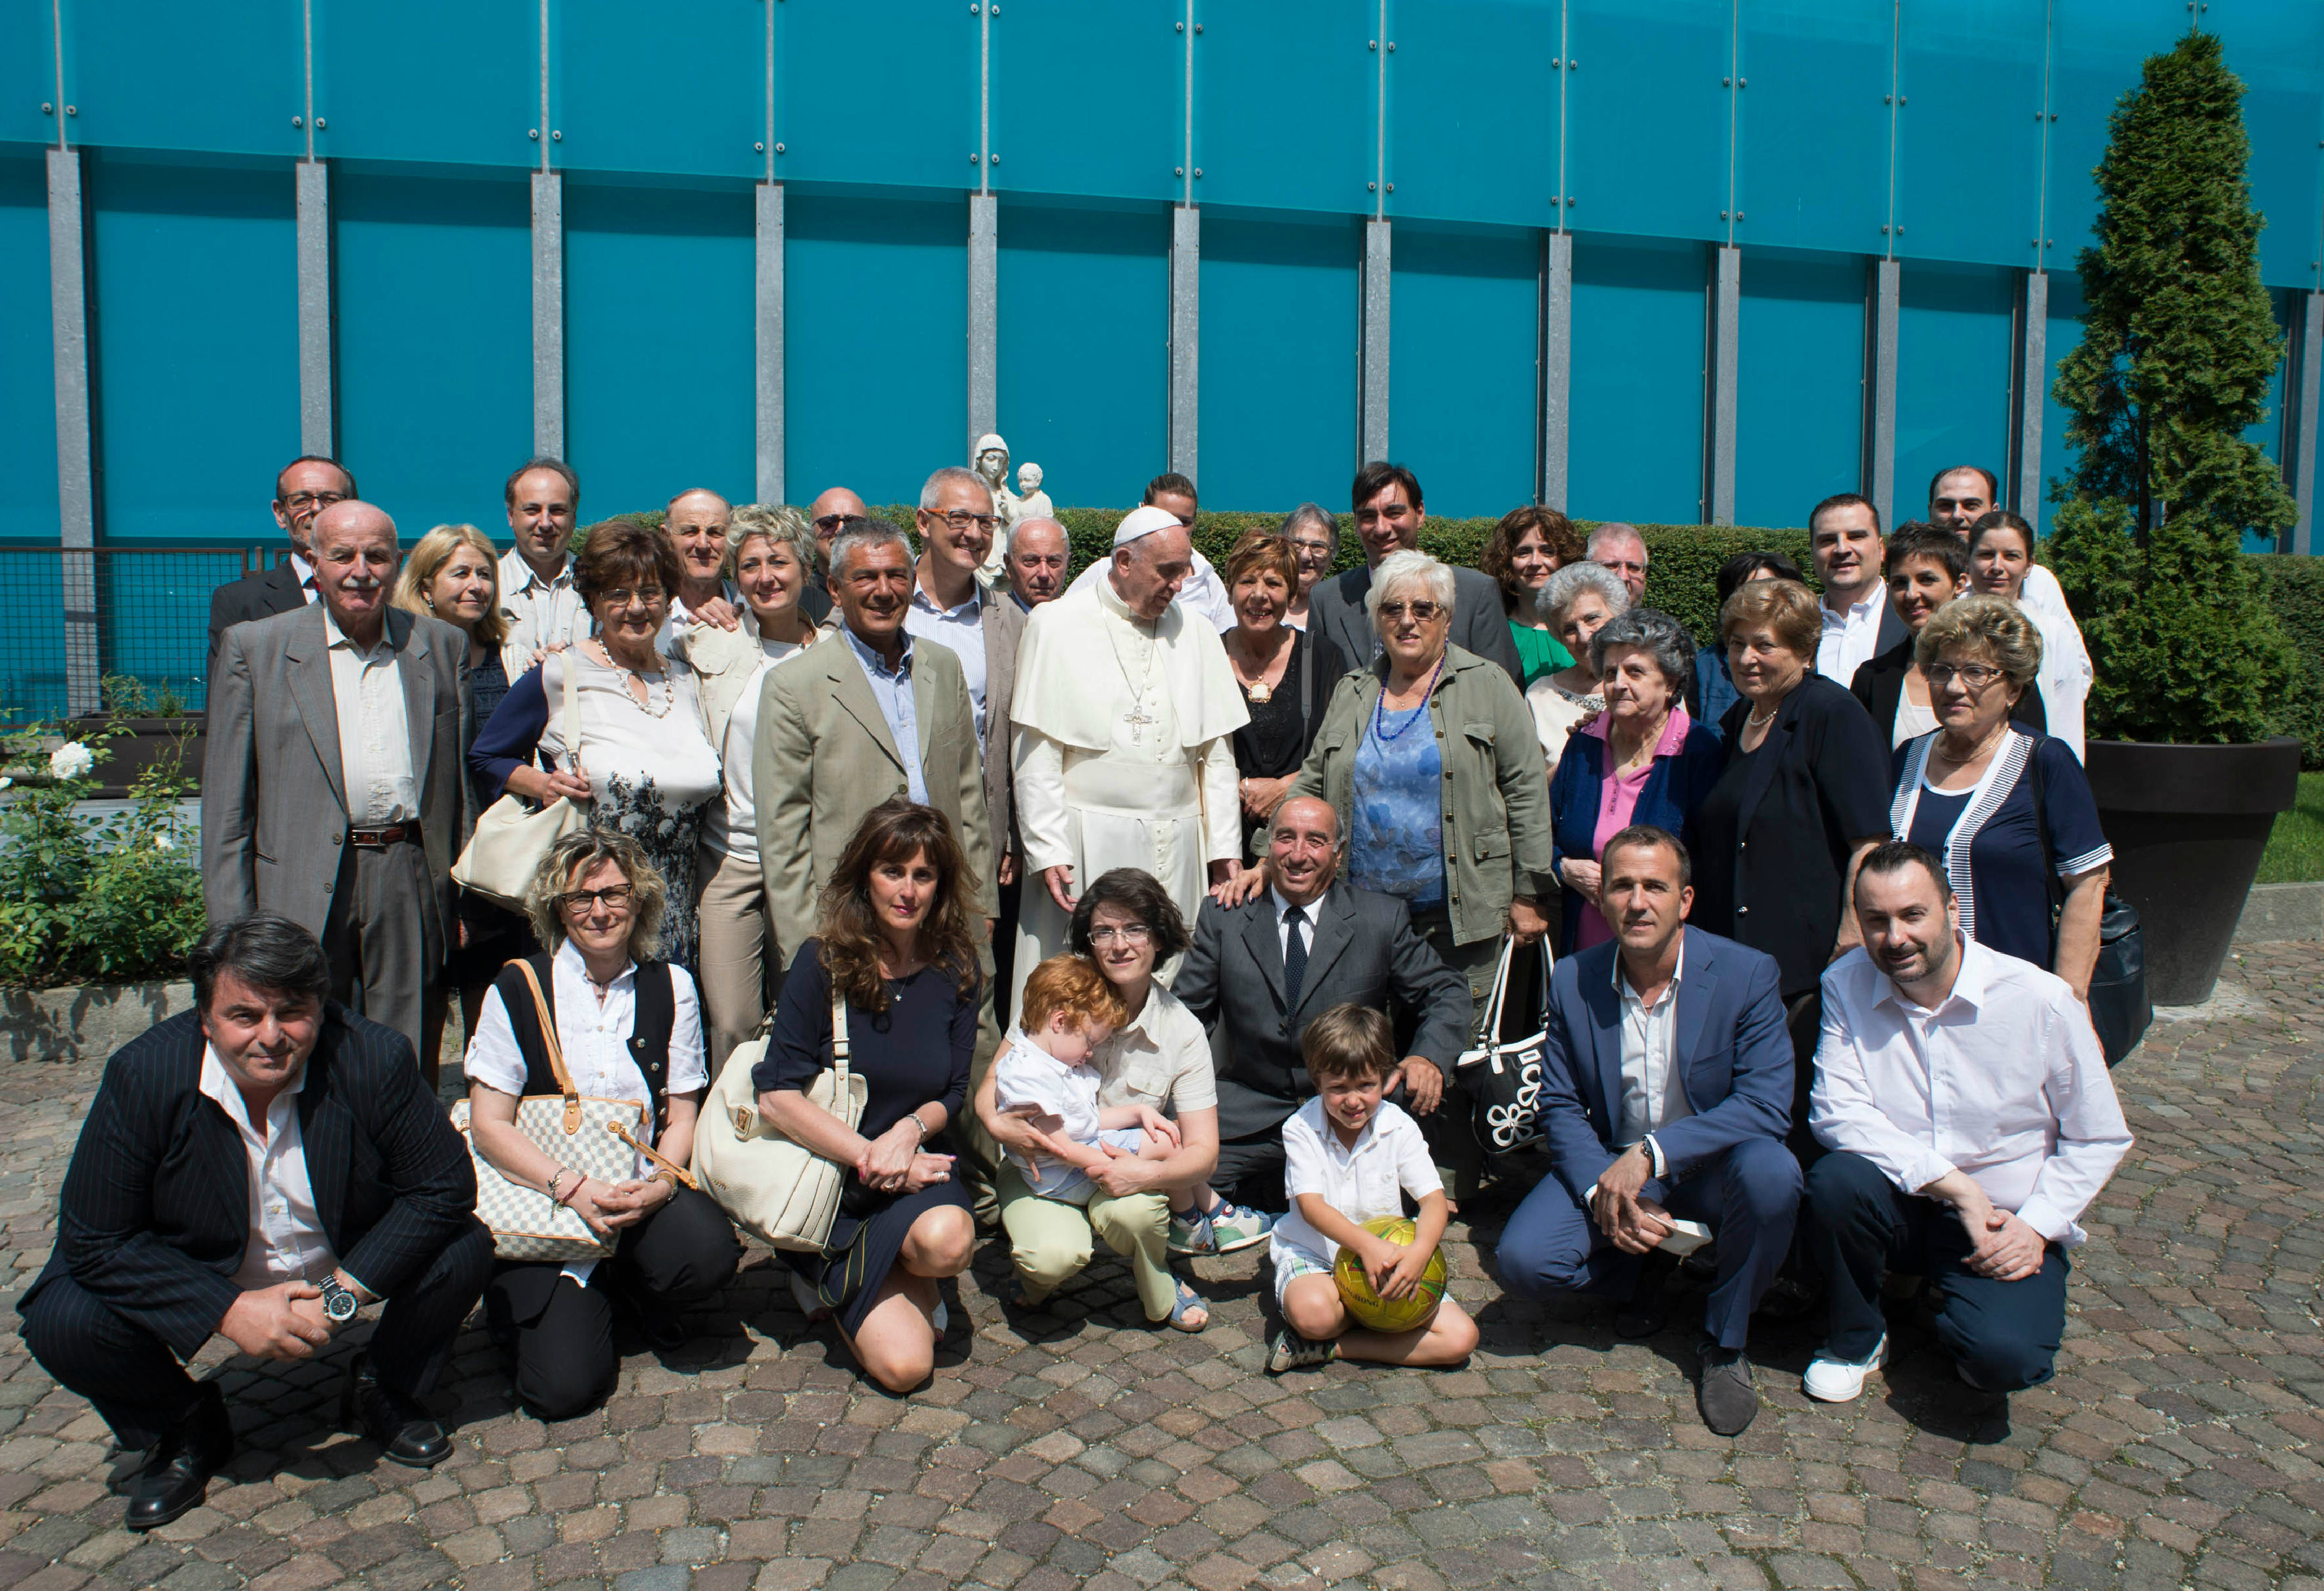 Pope Francis met with some members of his family during a strictly private meeting